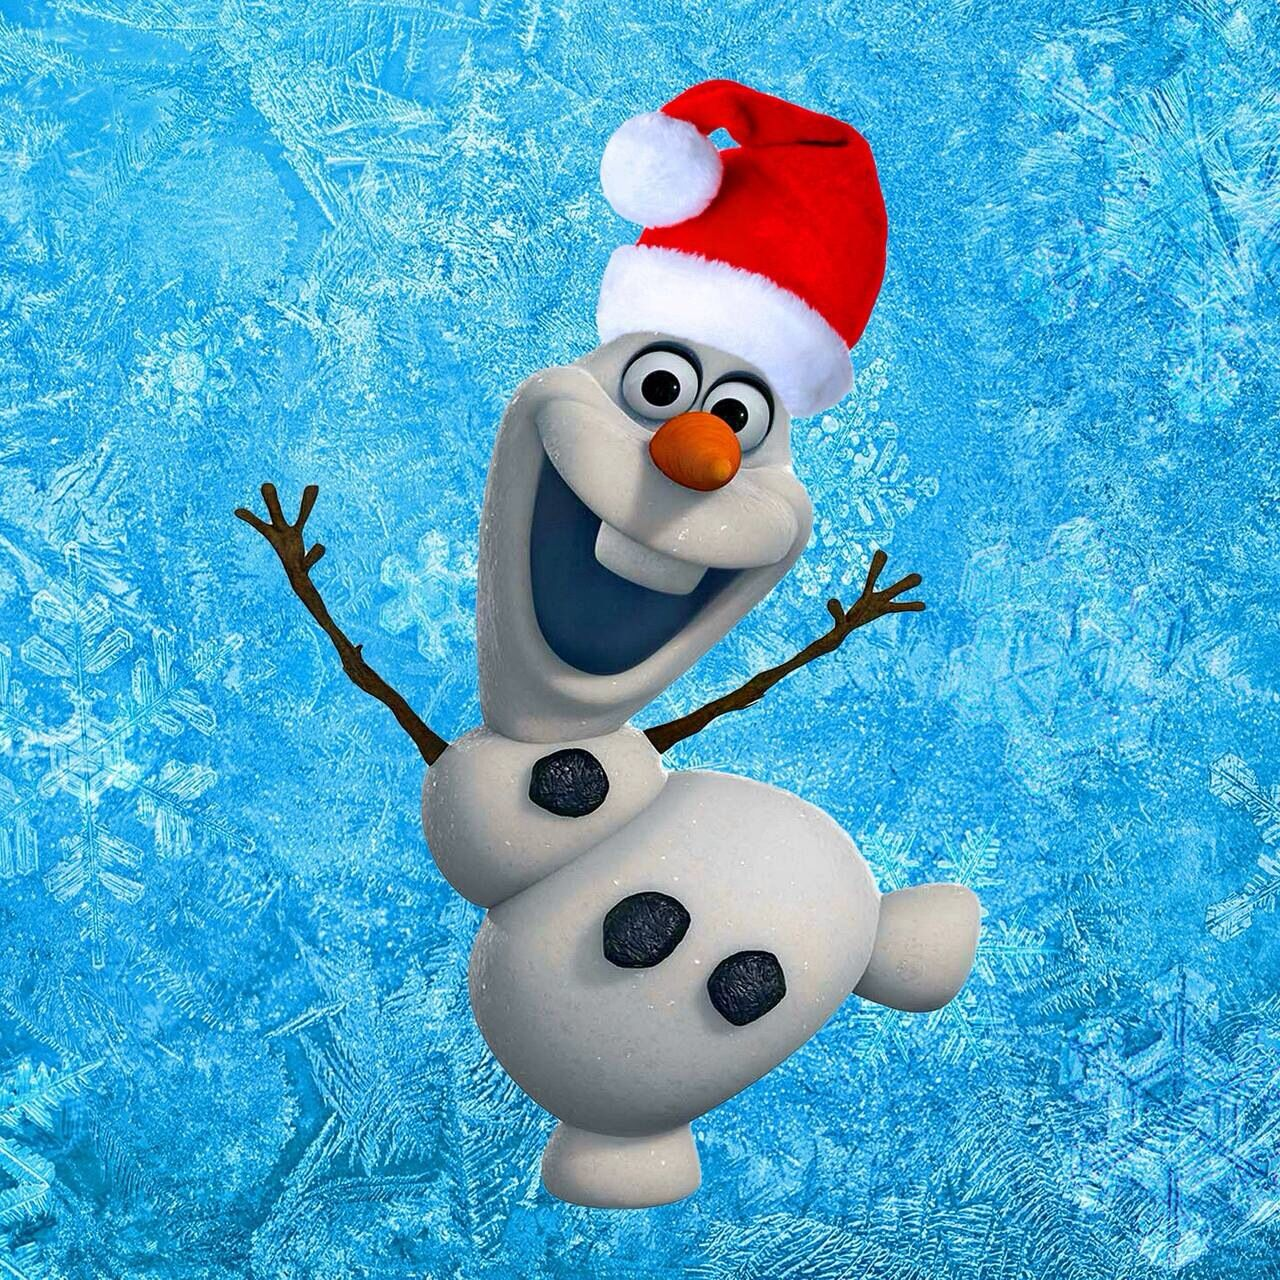 Pin by Paige Bowie on olaf Christmas phone wallpaper